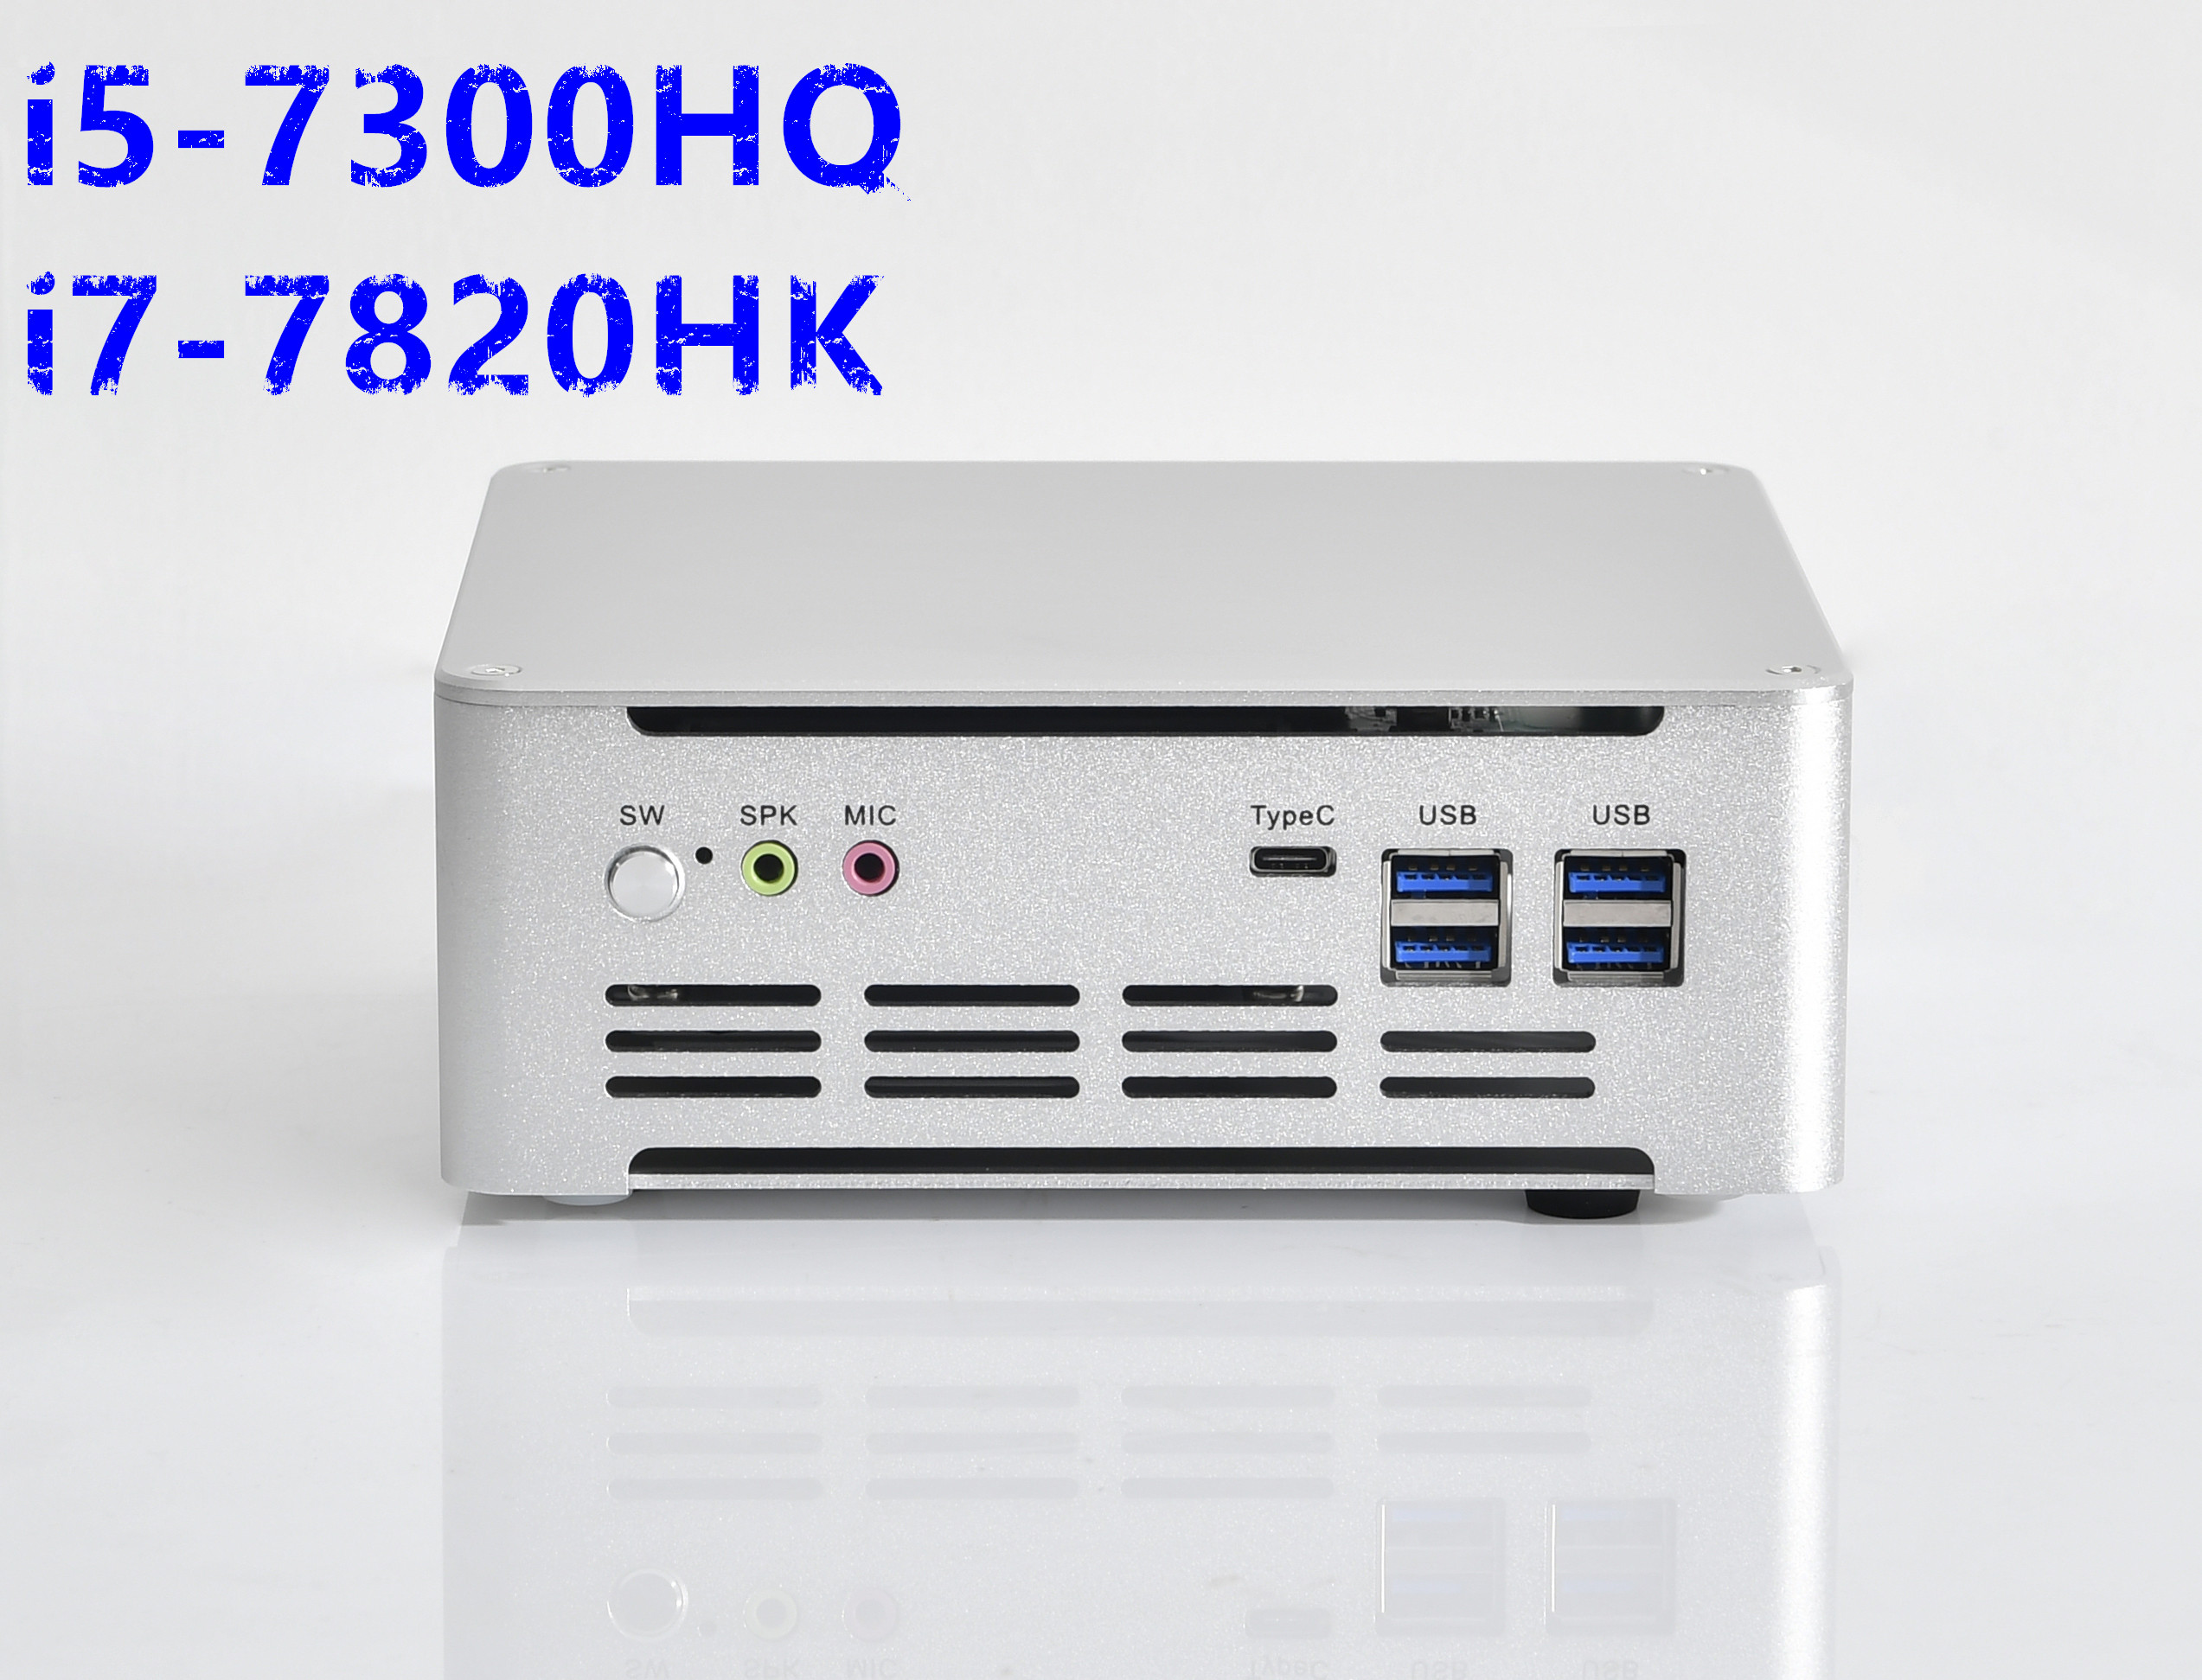 HYSTOU newest Mini Gaming PC Quad Core Intel <font><b>i5</b></font> <font><b>7300HQ</b></font> i7 7820HK Type-C DP HDMI 4k Thin Client Micro Computer image